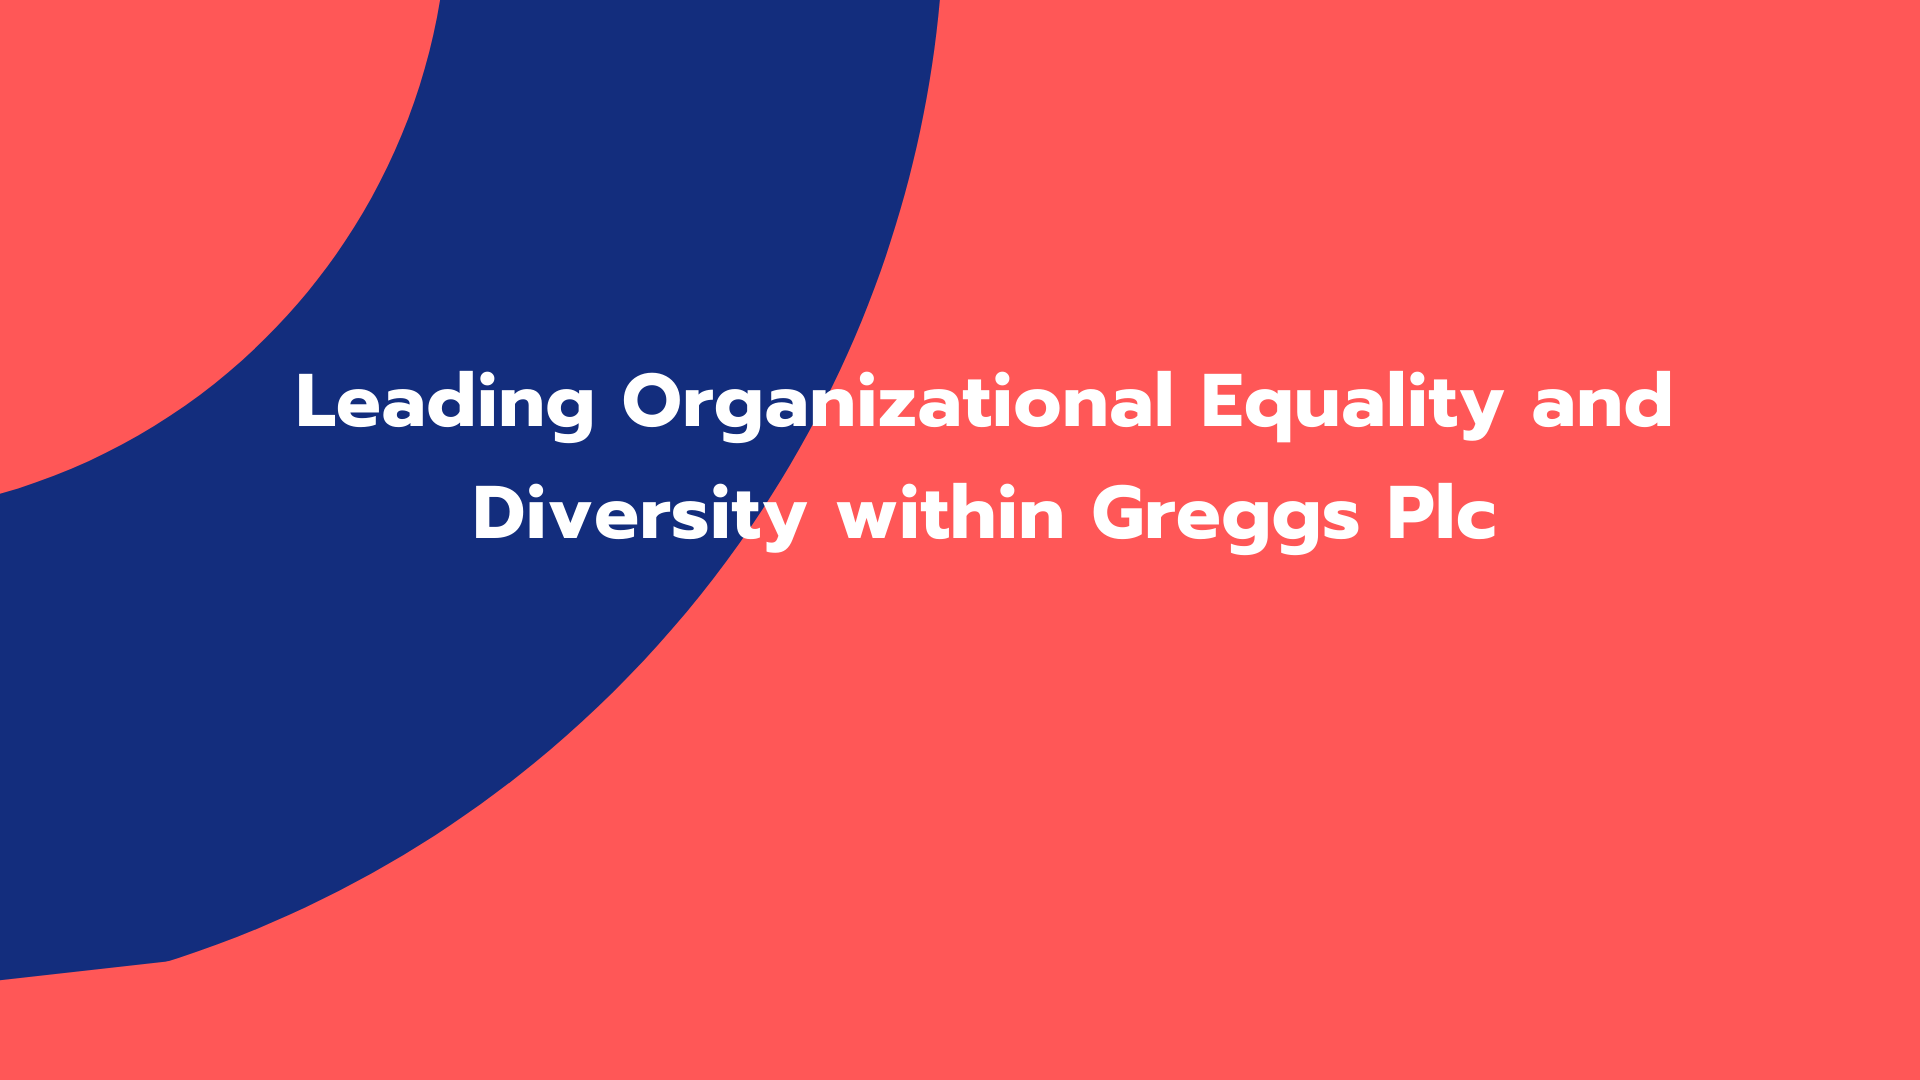 Leading Organizational Equality and Diversity within Greggs Plc